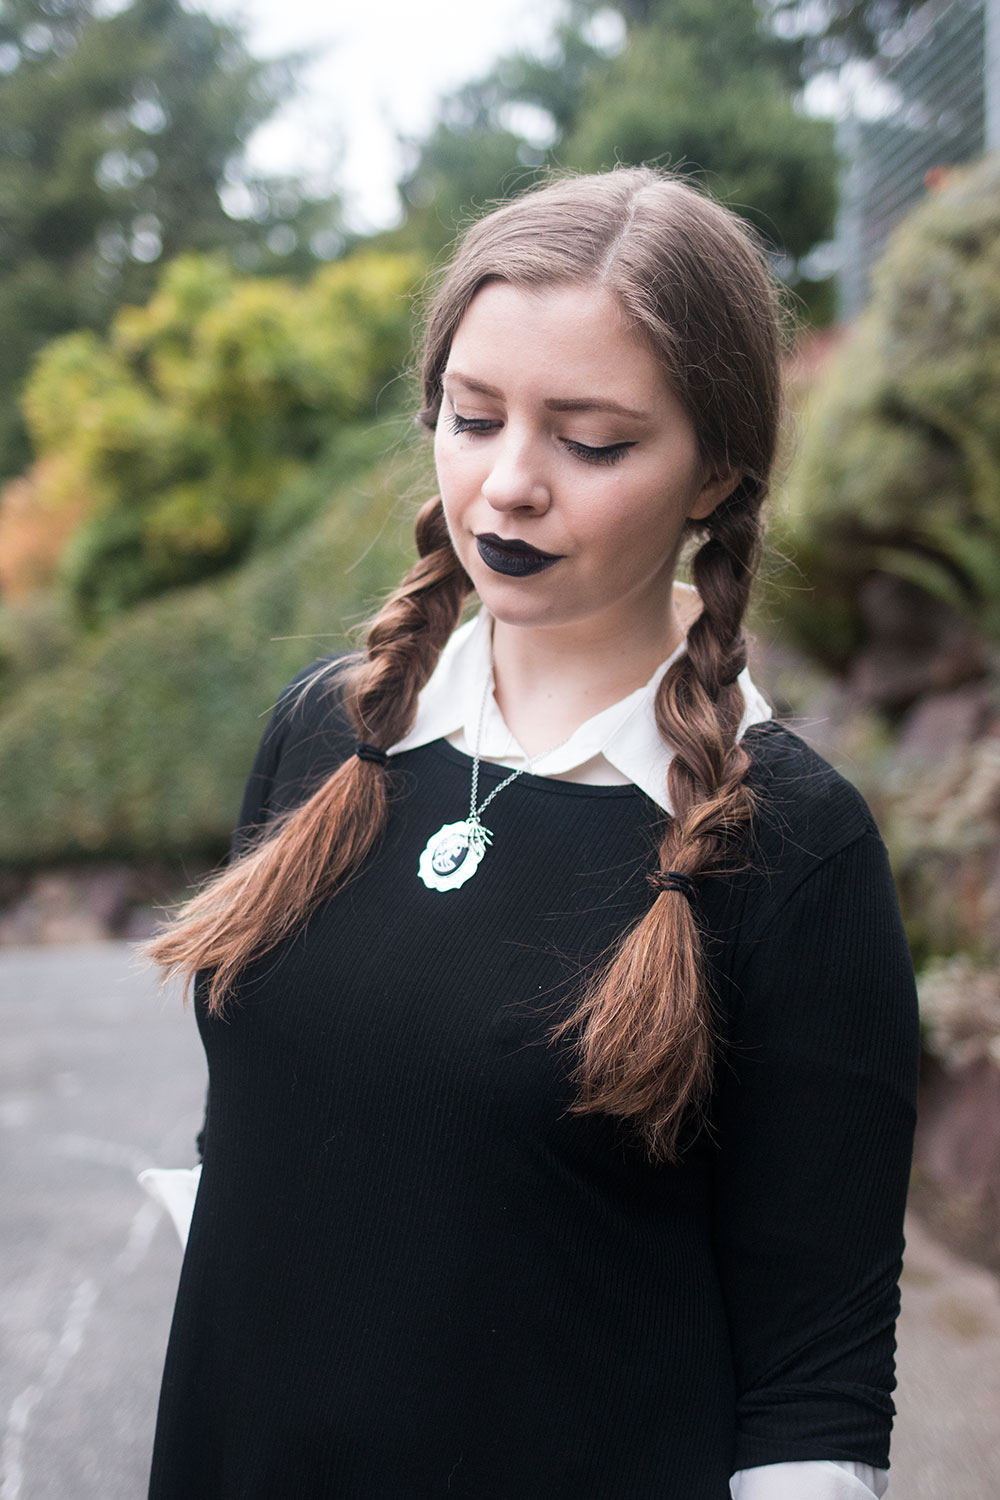 Wednesday Addams Halloween // Halloween Costumes for Work // Hello Rigby Seattle Fashion Blog